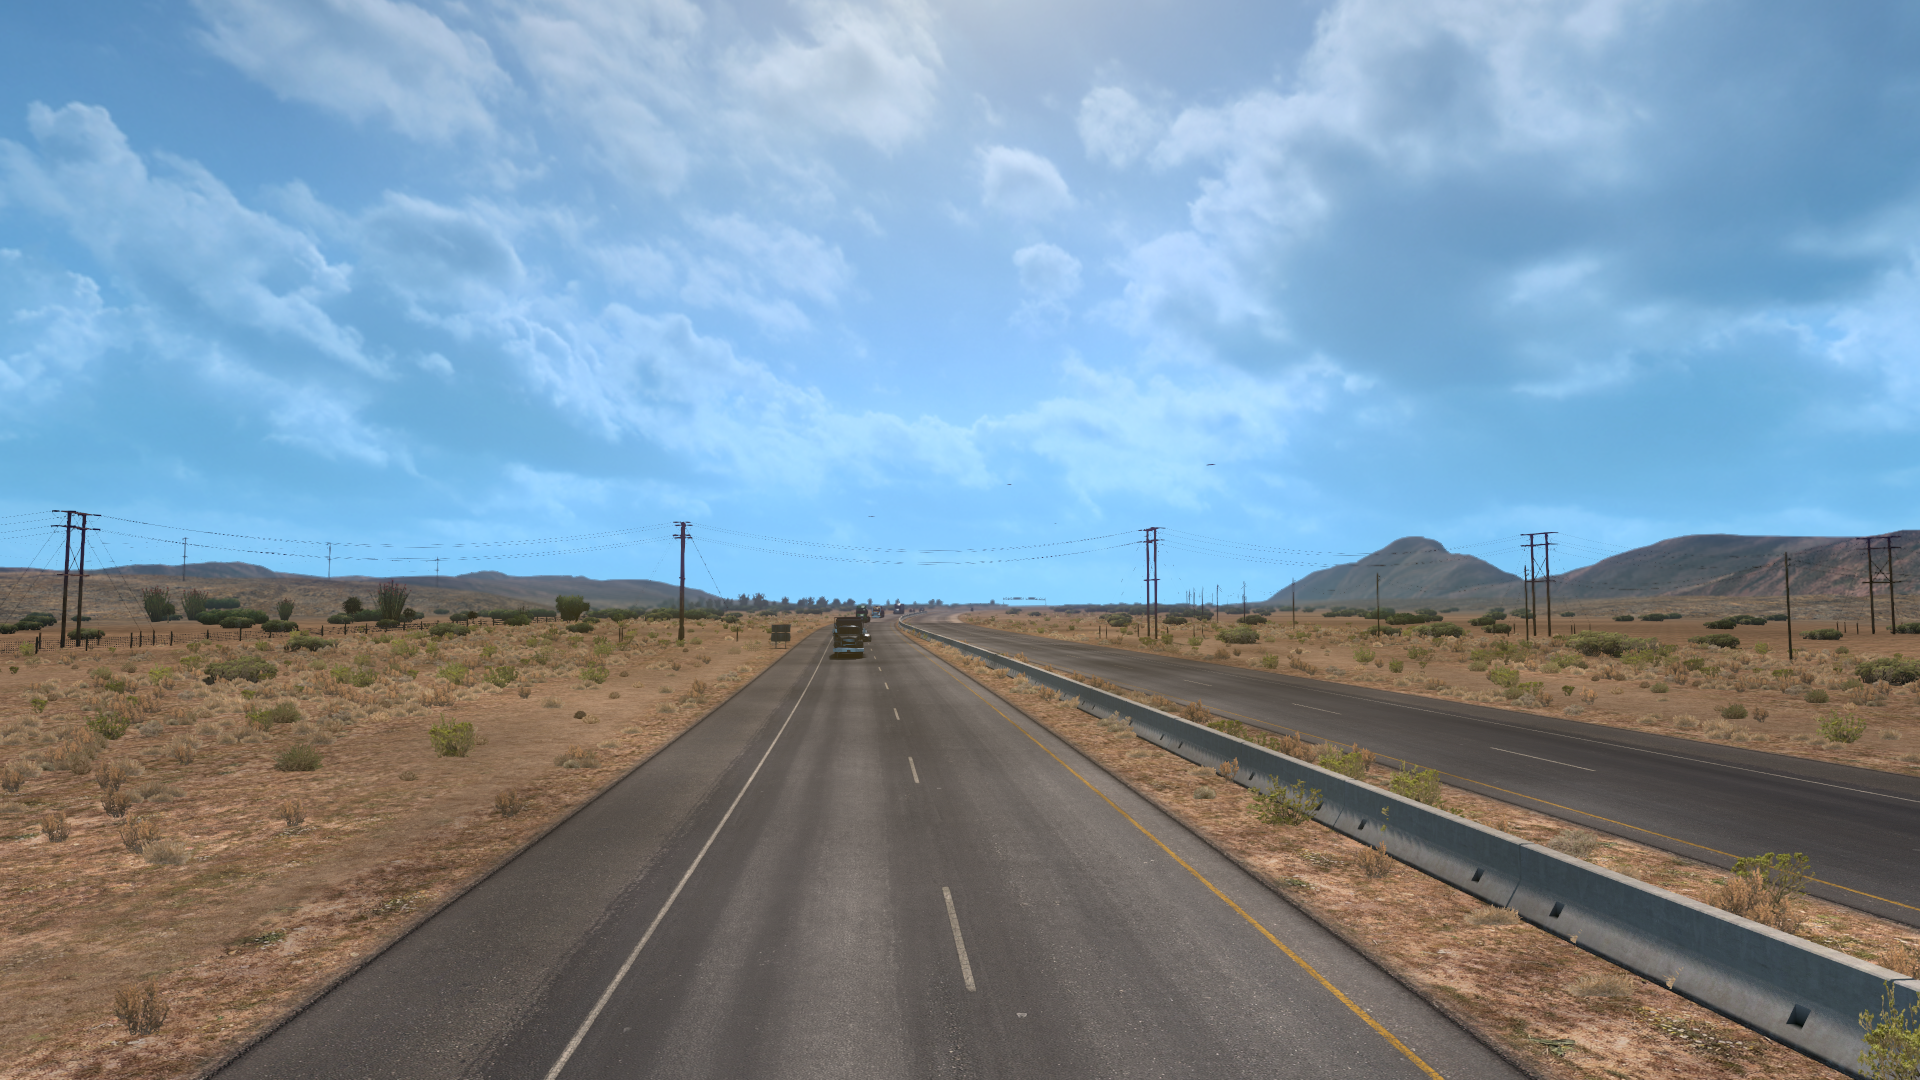 Interstate 40 | Truck Simulator Wiki | FANDOM powered by Wikia on route 66 us map, i 40 arizona map, i-35 map, i-40 highway, us highway 80 map, i-40 new mexico, i-40 oklahoma, i-40 rock slide, i-40 interstate conditions, i-40 bridge collapse, u.s. route 40 map, i-40 crash, i-40 california, i 40 arkansas map, i-40 sign, i 40 tn map, i-40 in tennessee, highway 40 colorado map, i-40 exit guide, i 30 map,